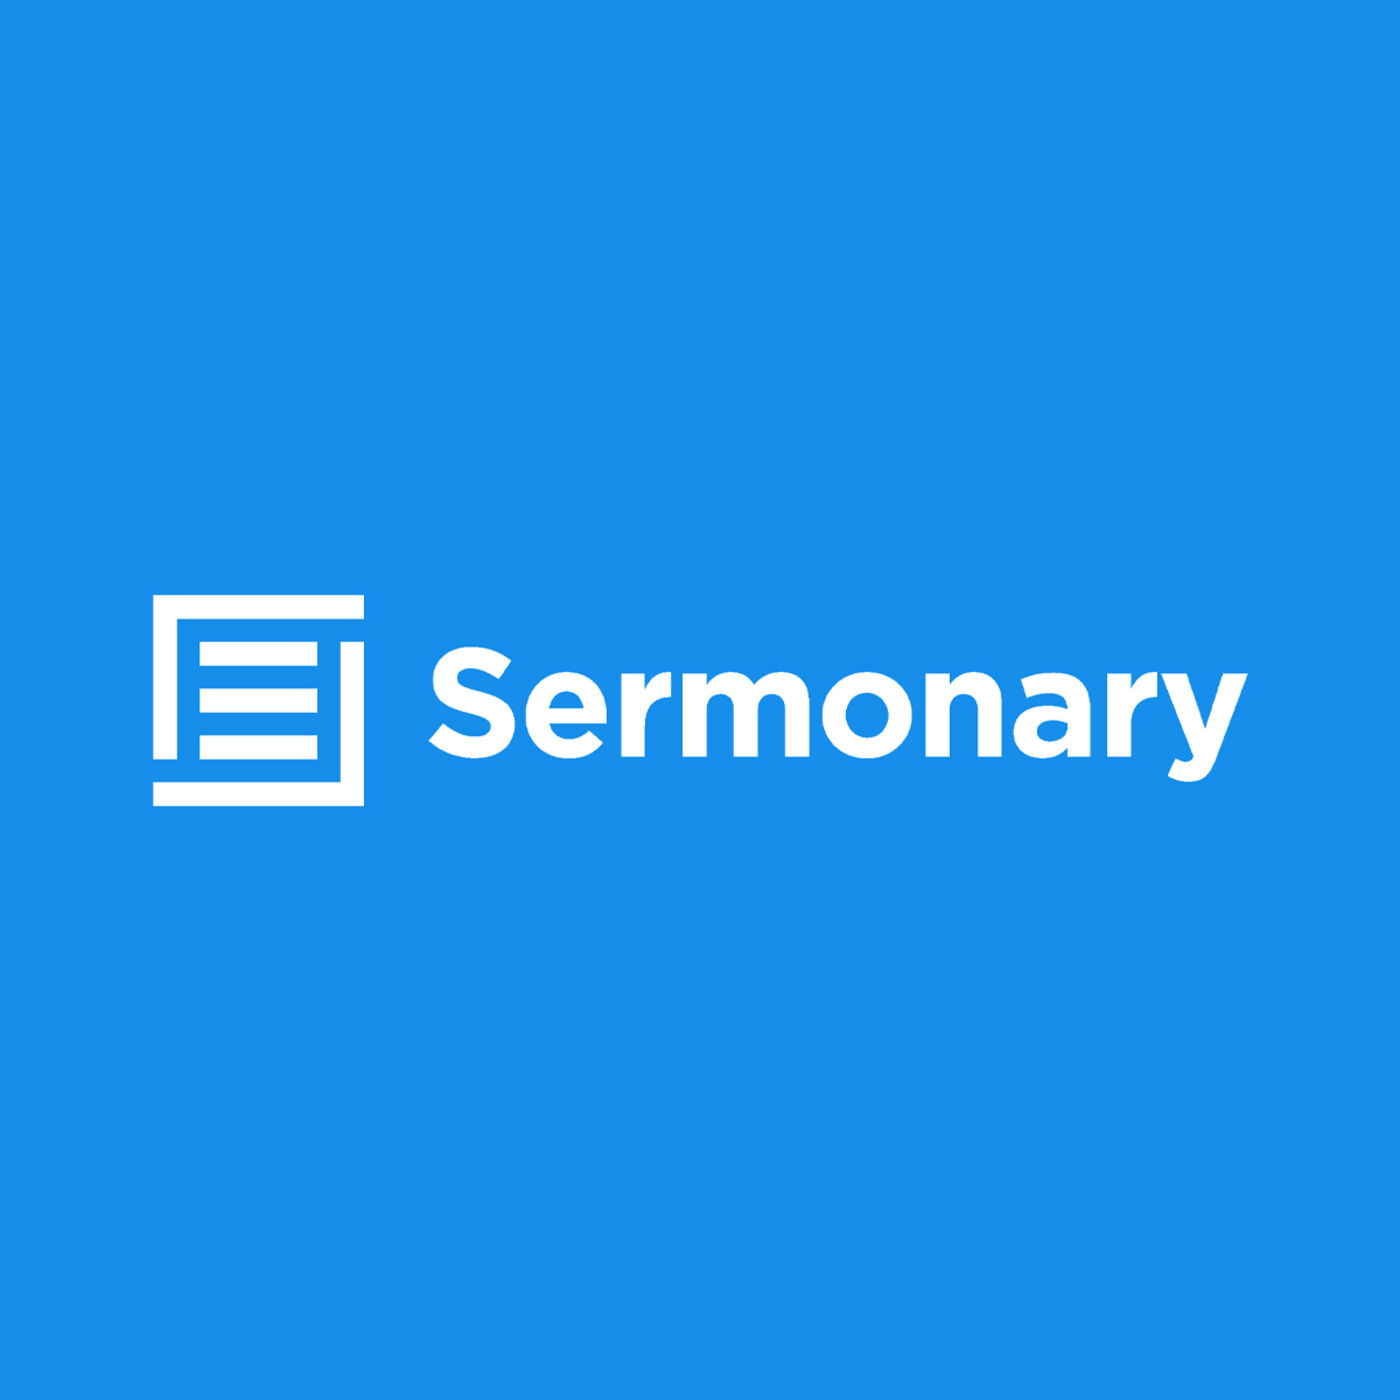 Preaching the List of Names in the Bible - Sermonary Podcast